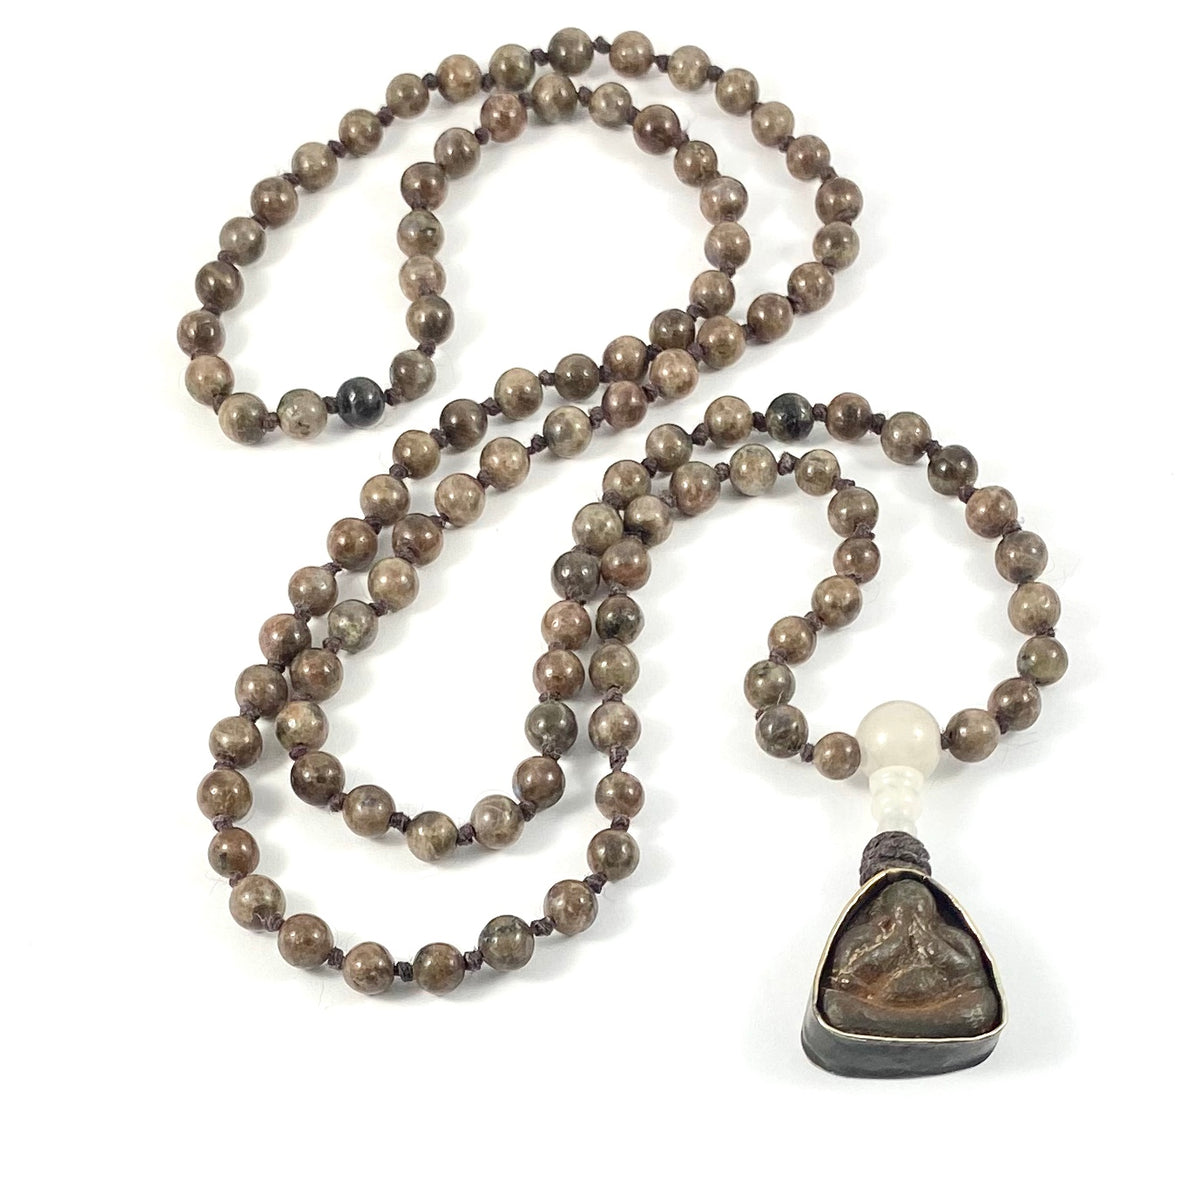 Semi-Precious Stone Mala Necklace - 6mm Brown Labradorite